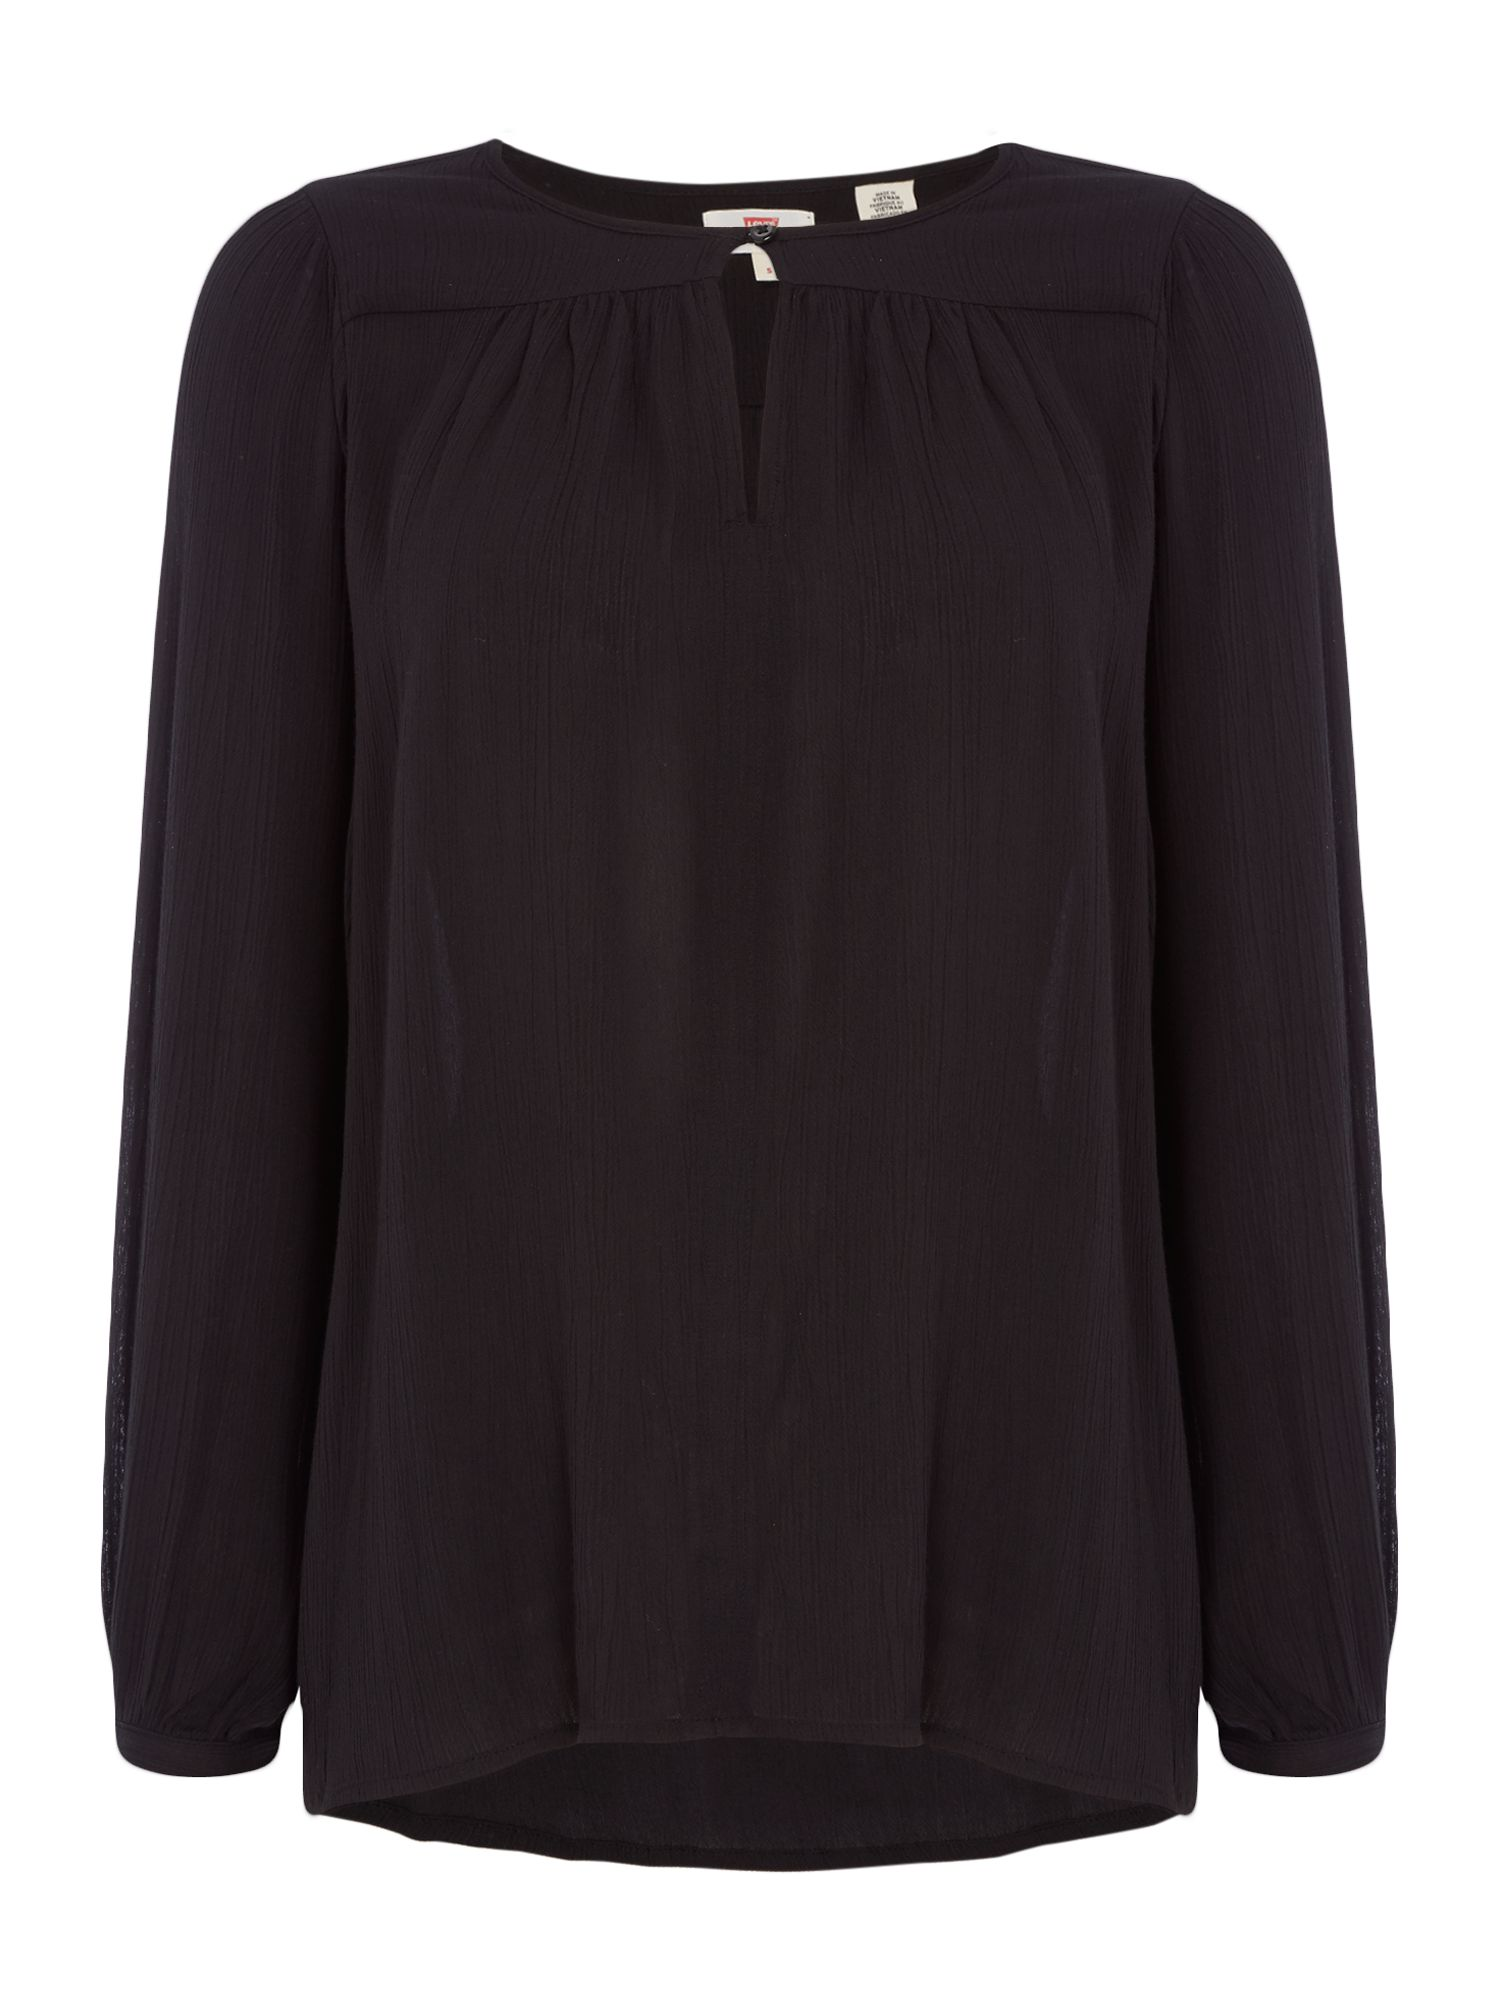 Levi's Long sleeves blouse with button detail, Black